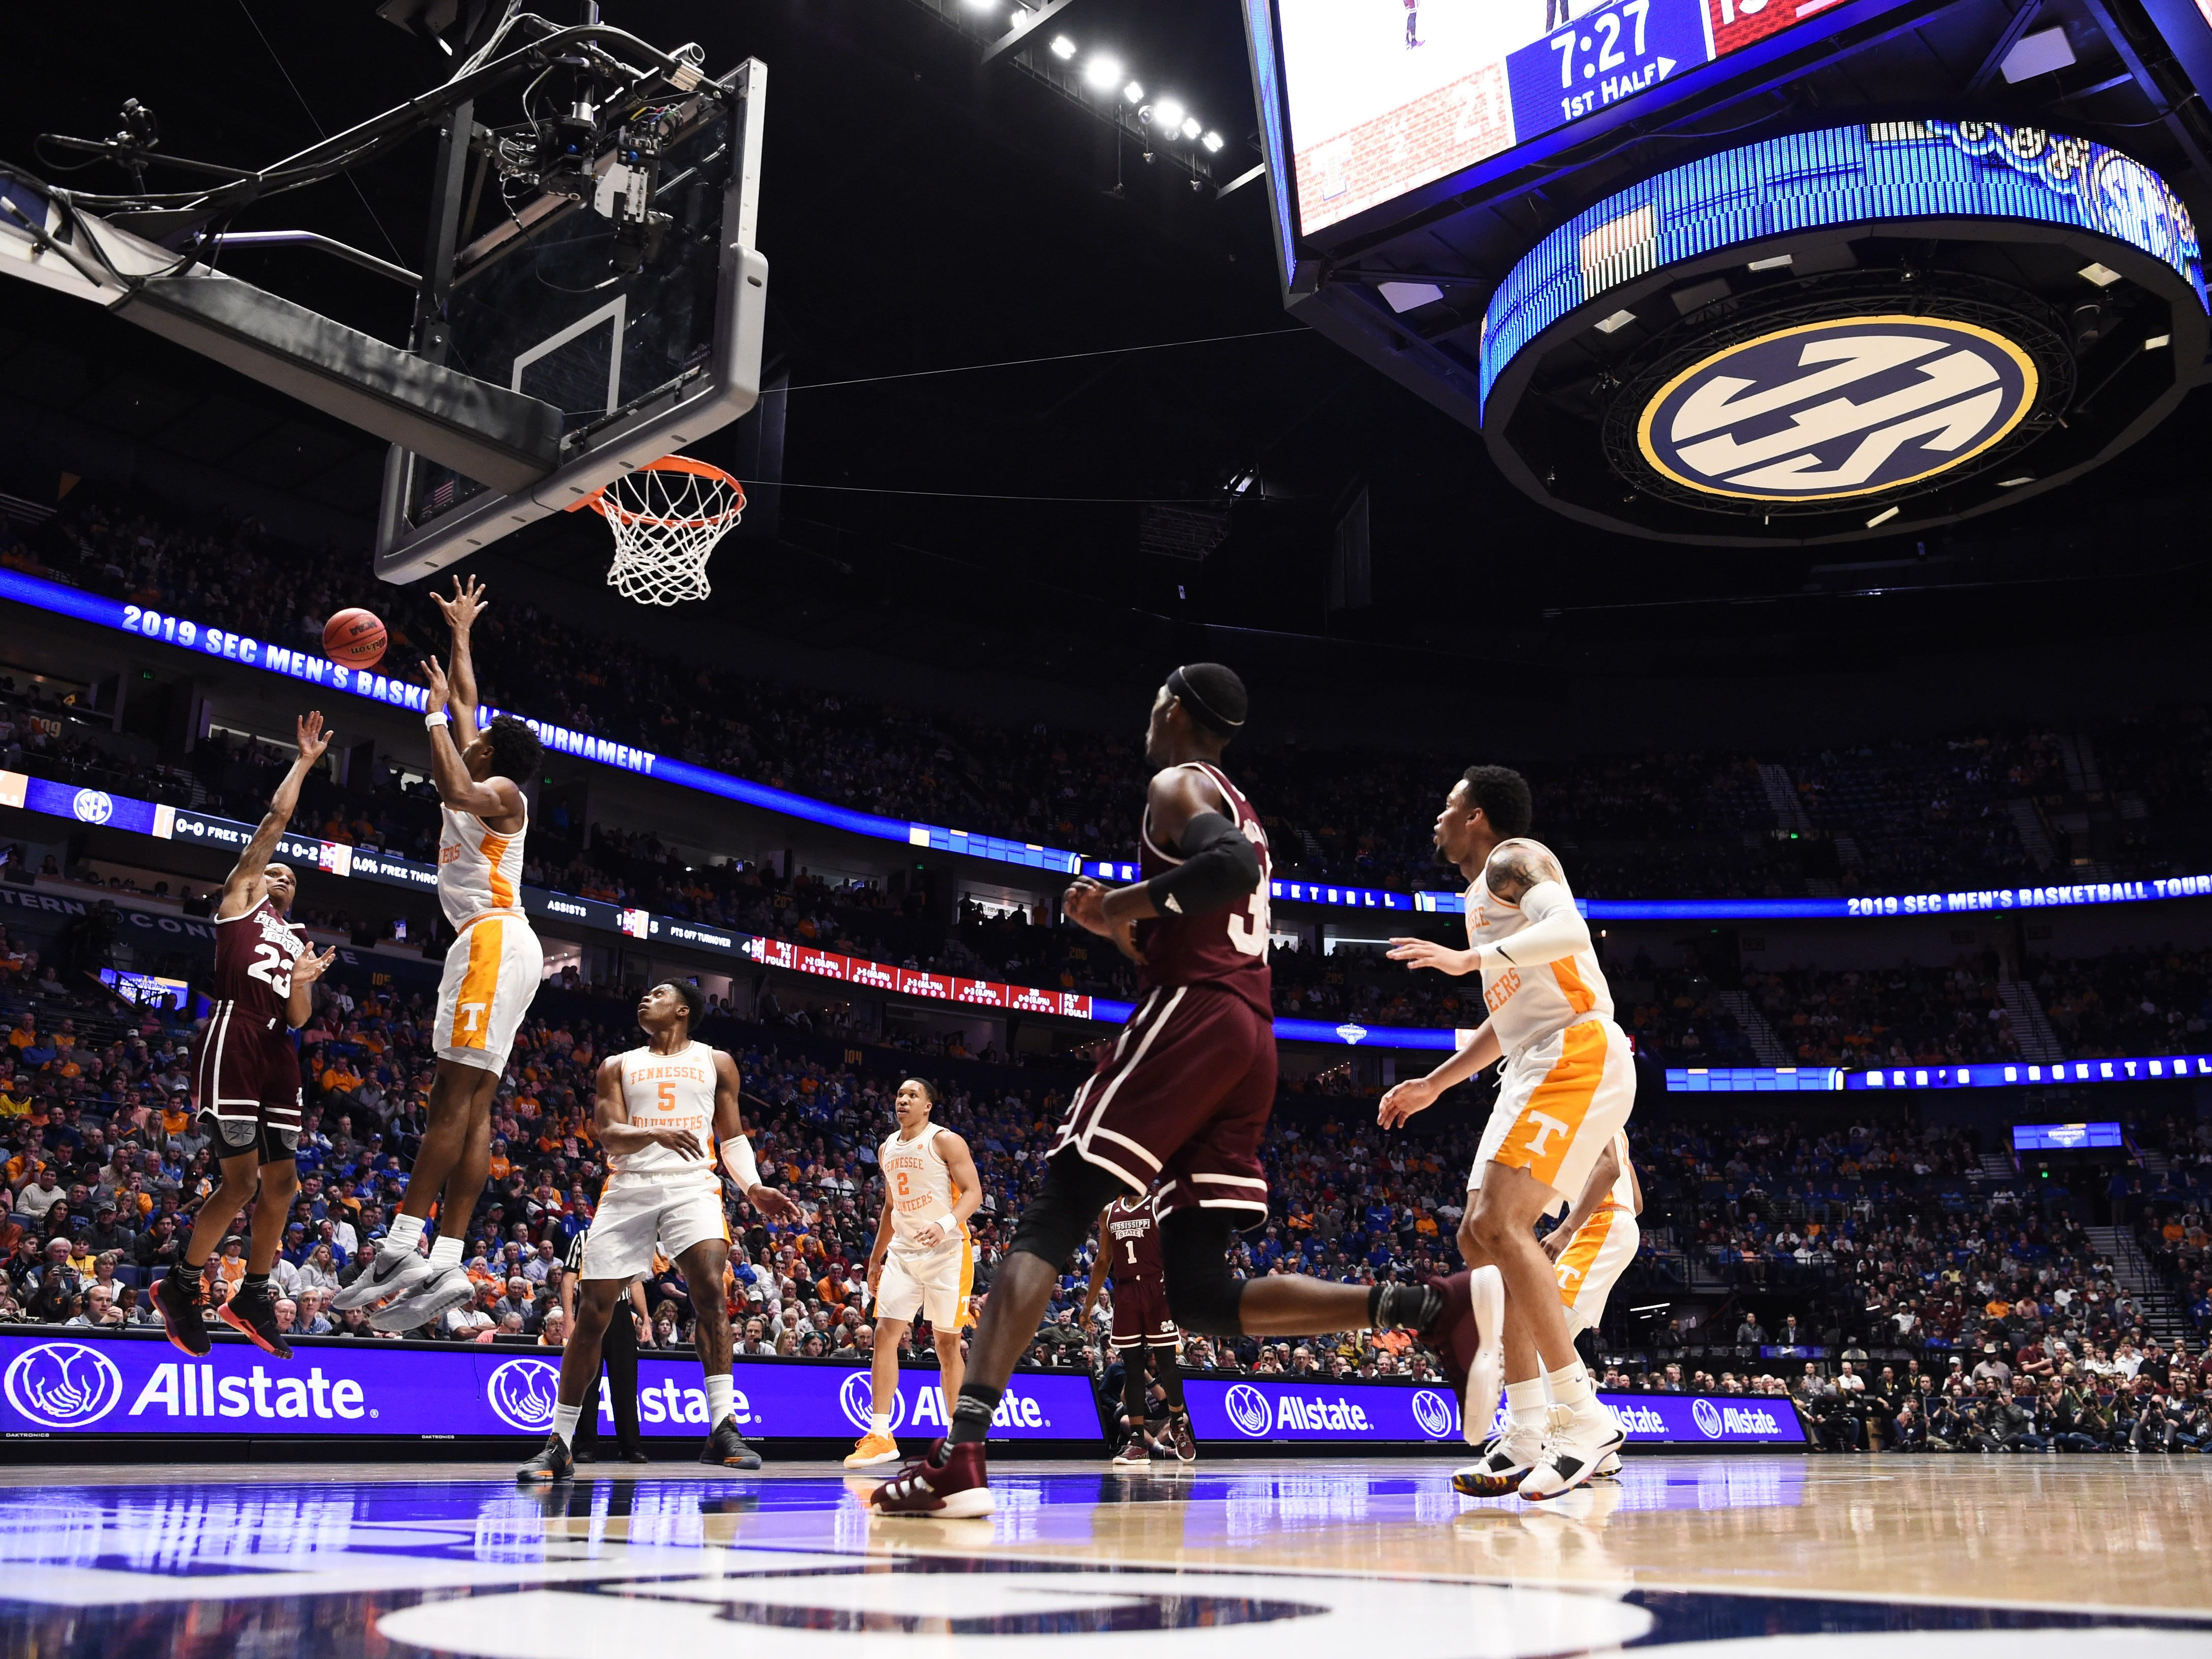 Mississippi State guard Tyson Carter (23) shoots during the first half of the SEC Men's Basketball Tournament game against Tennessee at Bridgestone Arena in Nashville, Tenn., Friday, March 15, 2019.